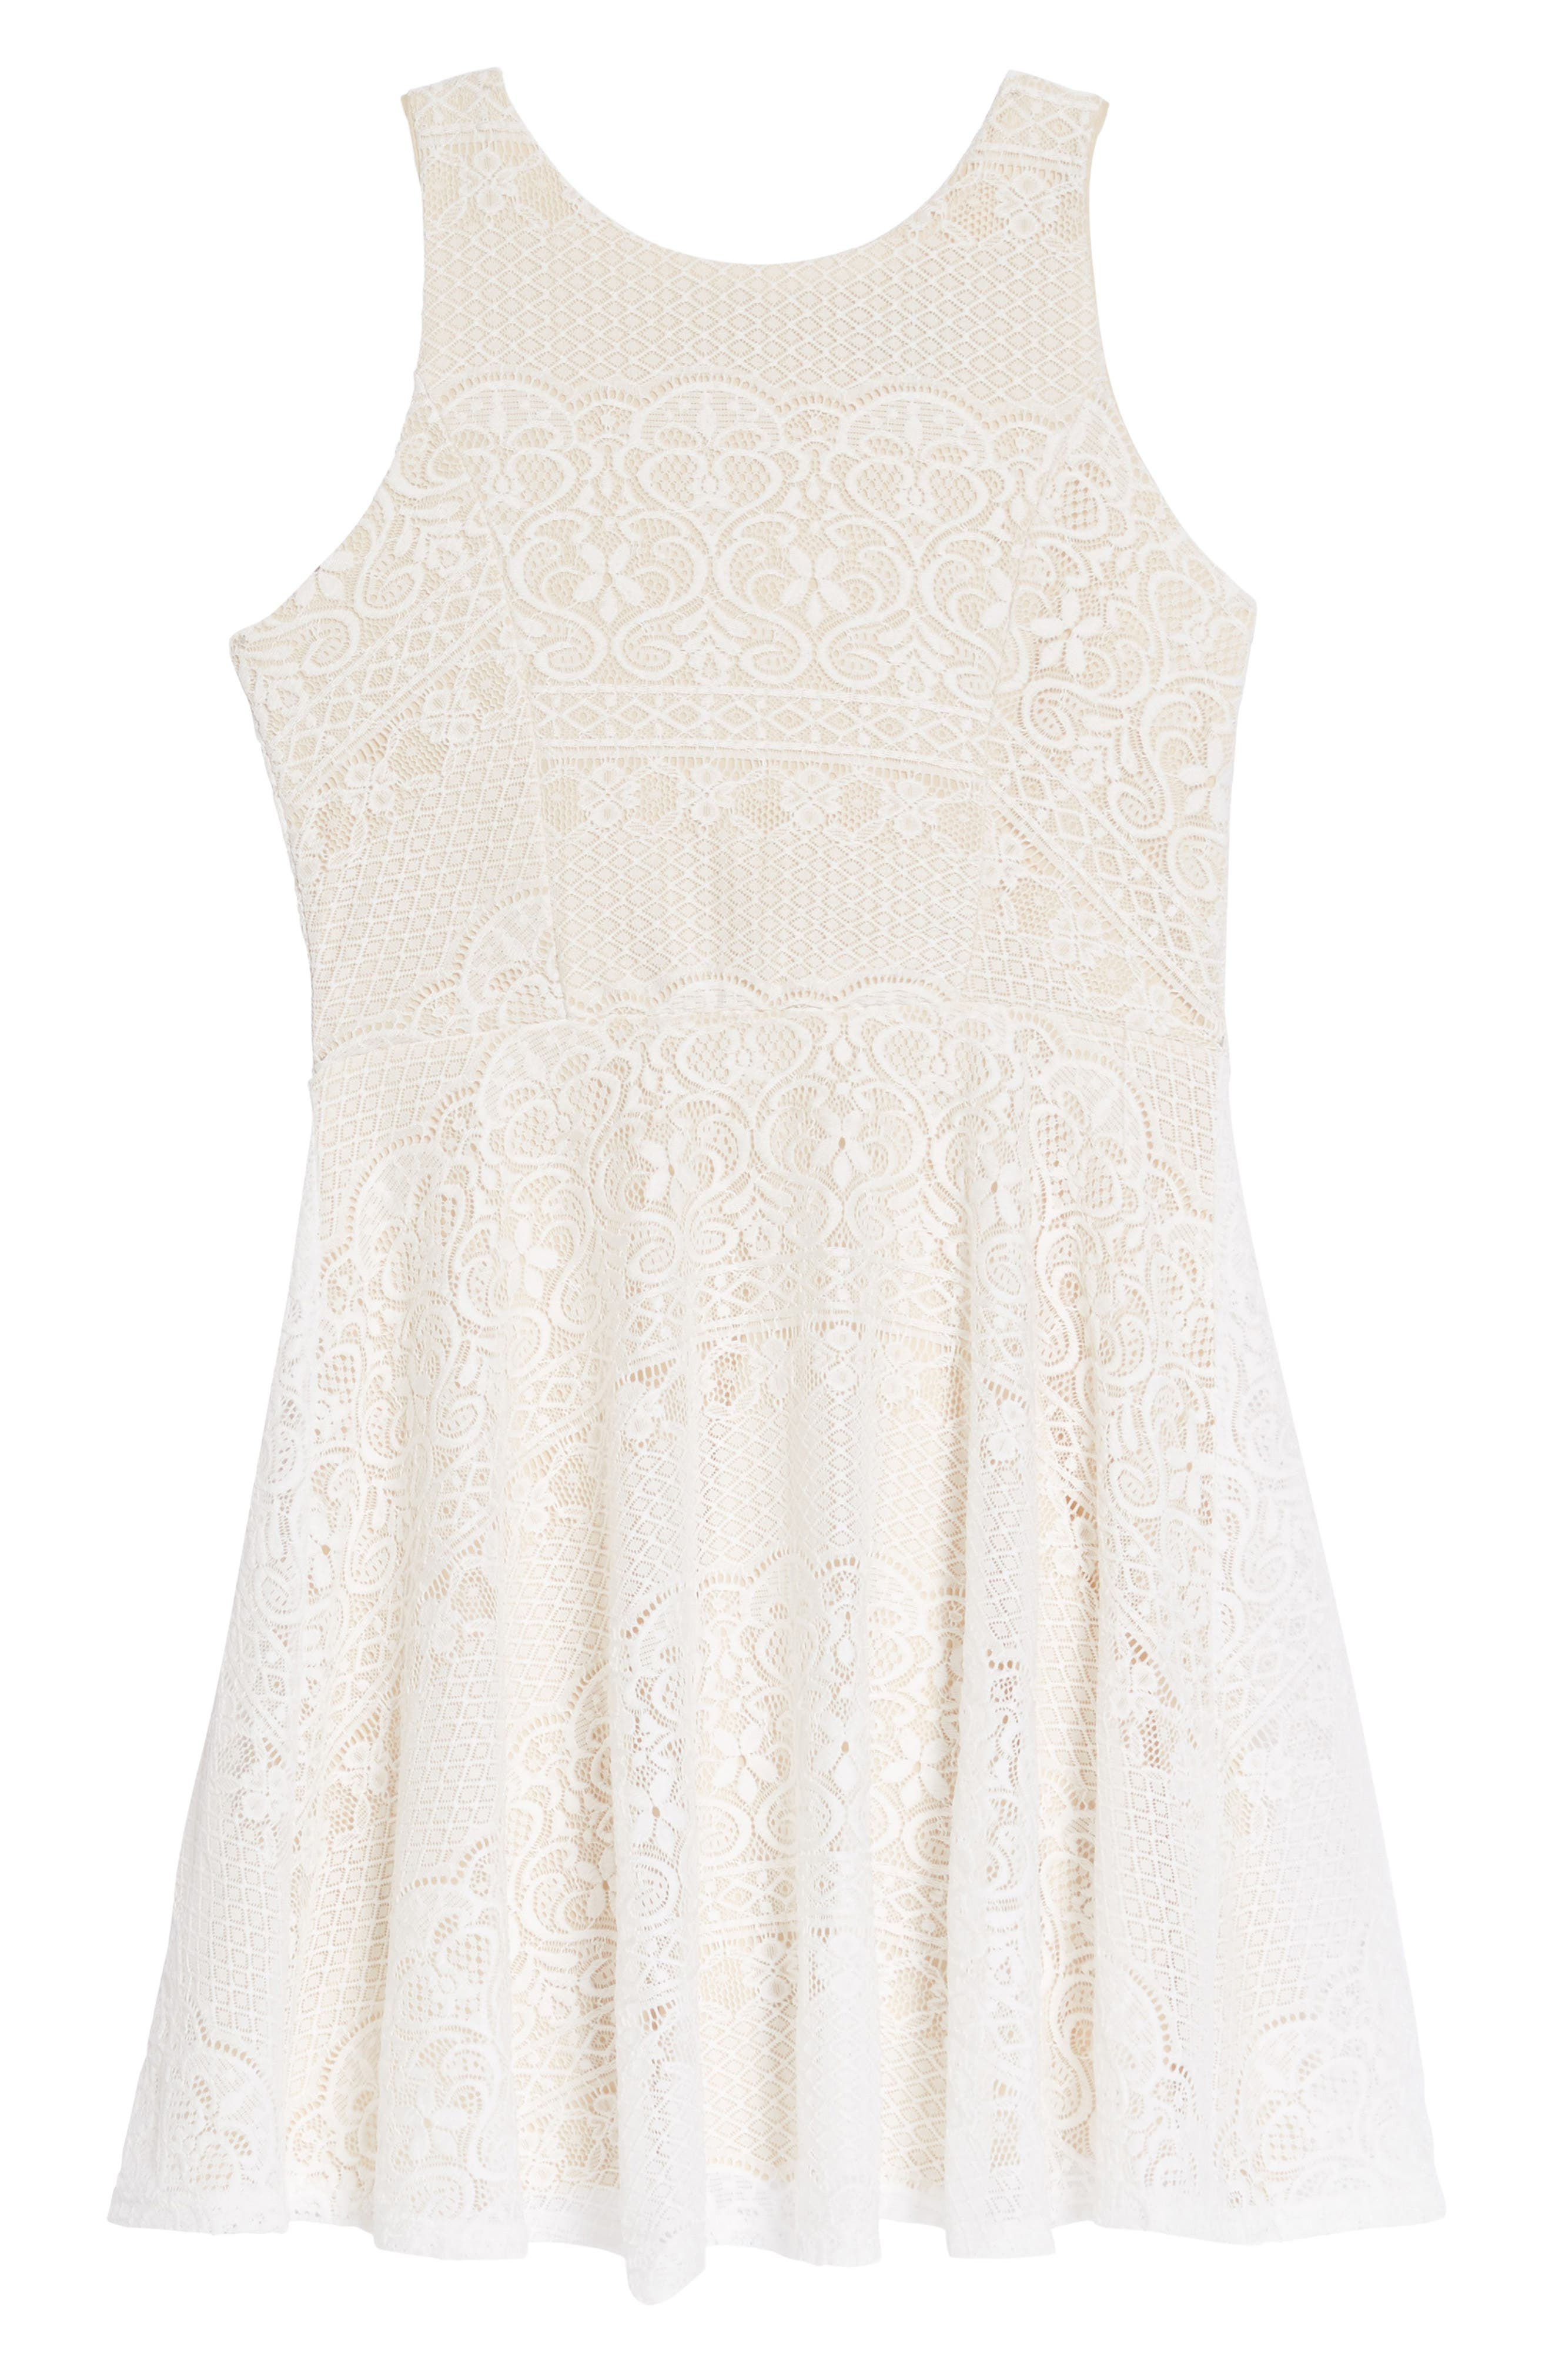 Ava & Yelly Rochelle Lace Skater Dress (Big Girls)